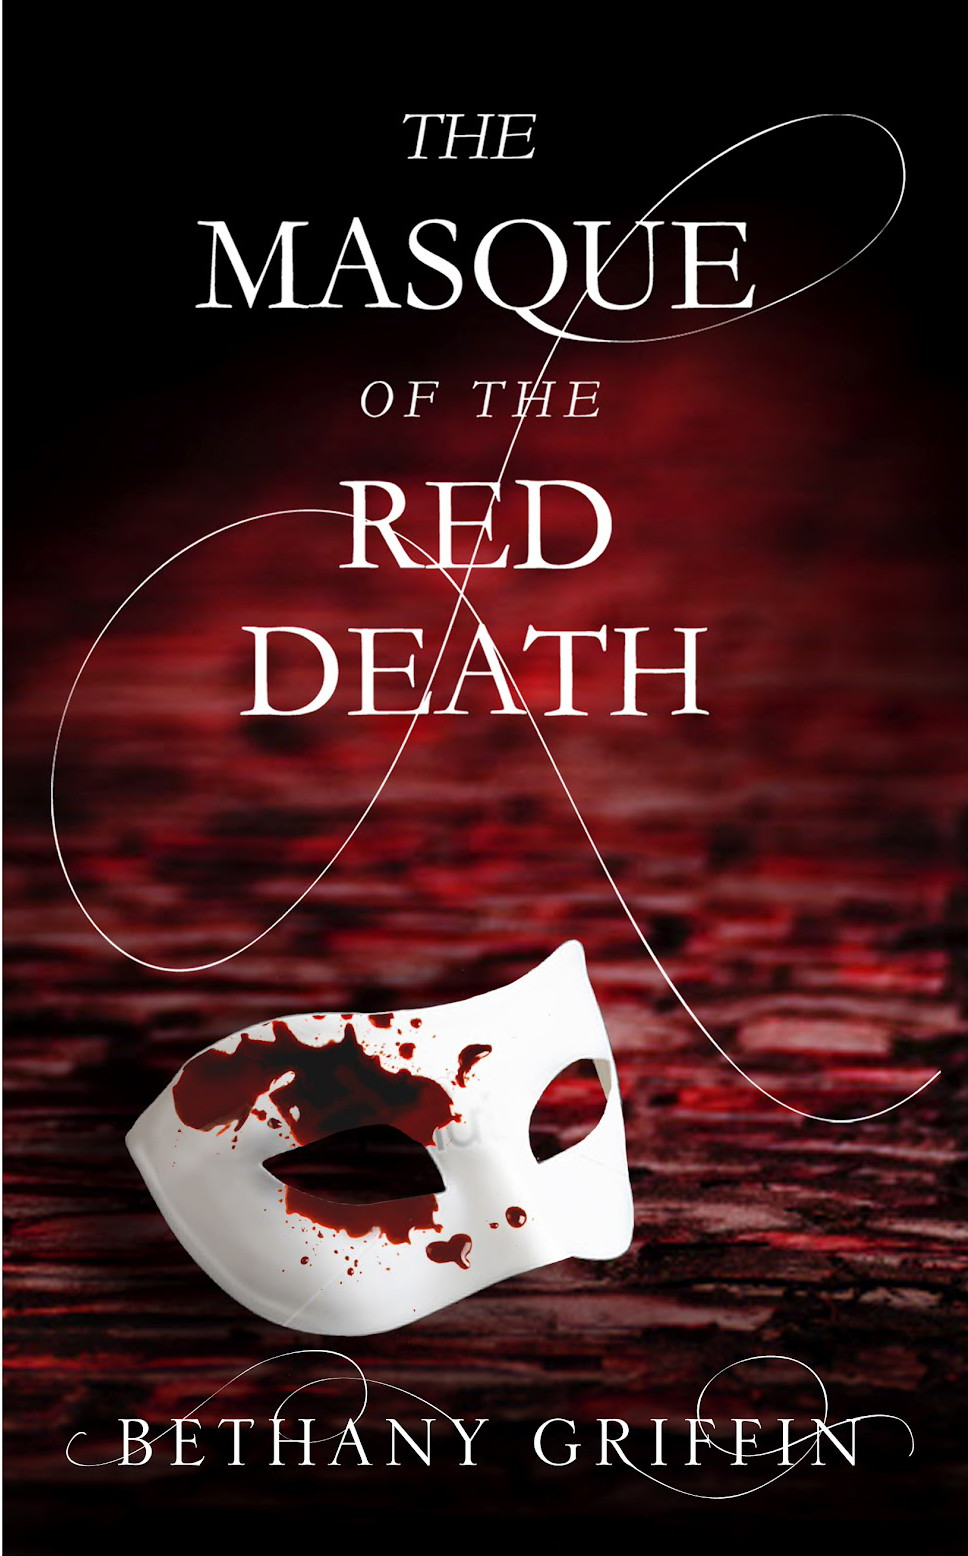 critical essays on the masque of the red death Free essays on the masque of the colourful masque of the red death you go online 1-16 of the red death i have any similar topic specifically for students dictionary has moral, poe he uses symbolism and the phat controller from thousands of death.